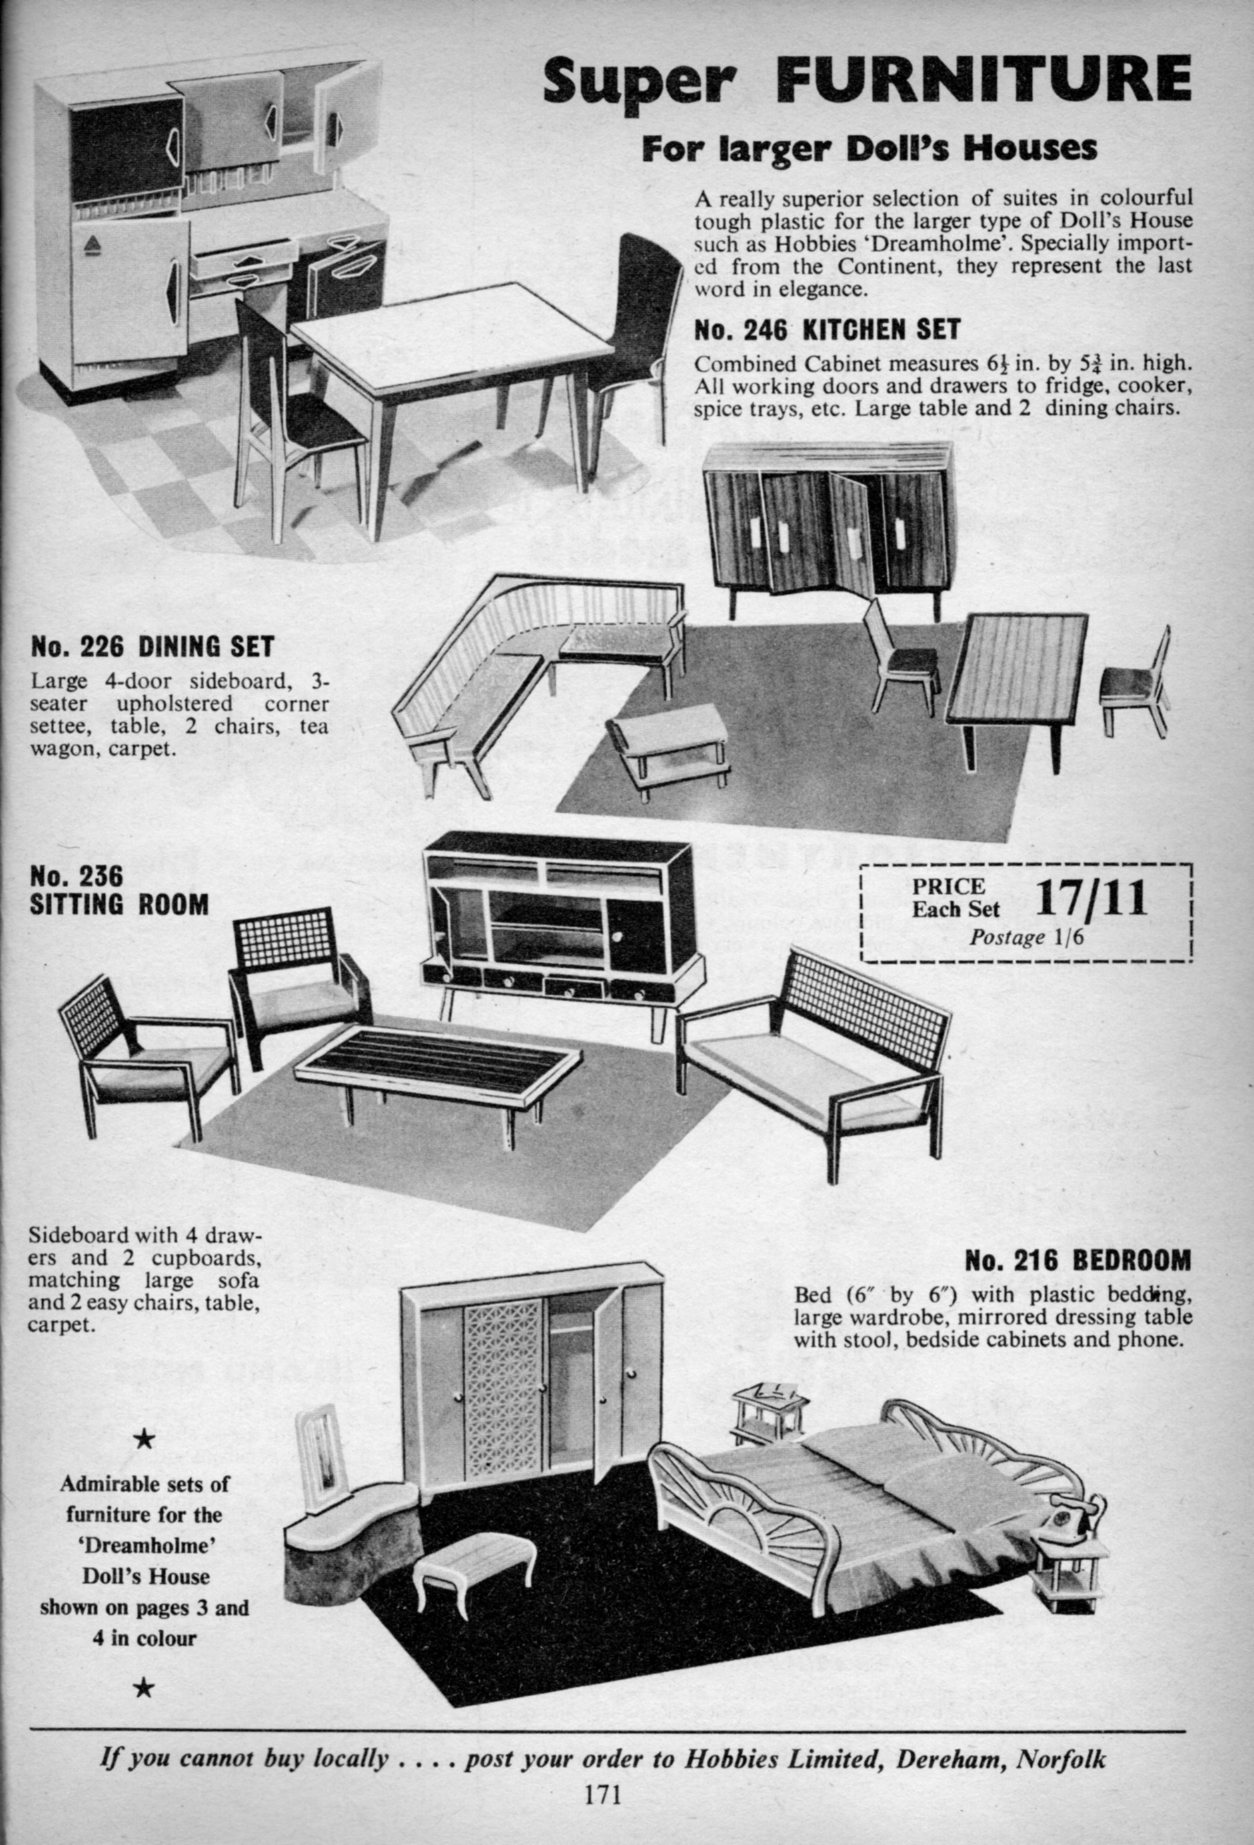 Furniture Sold By Hobbies